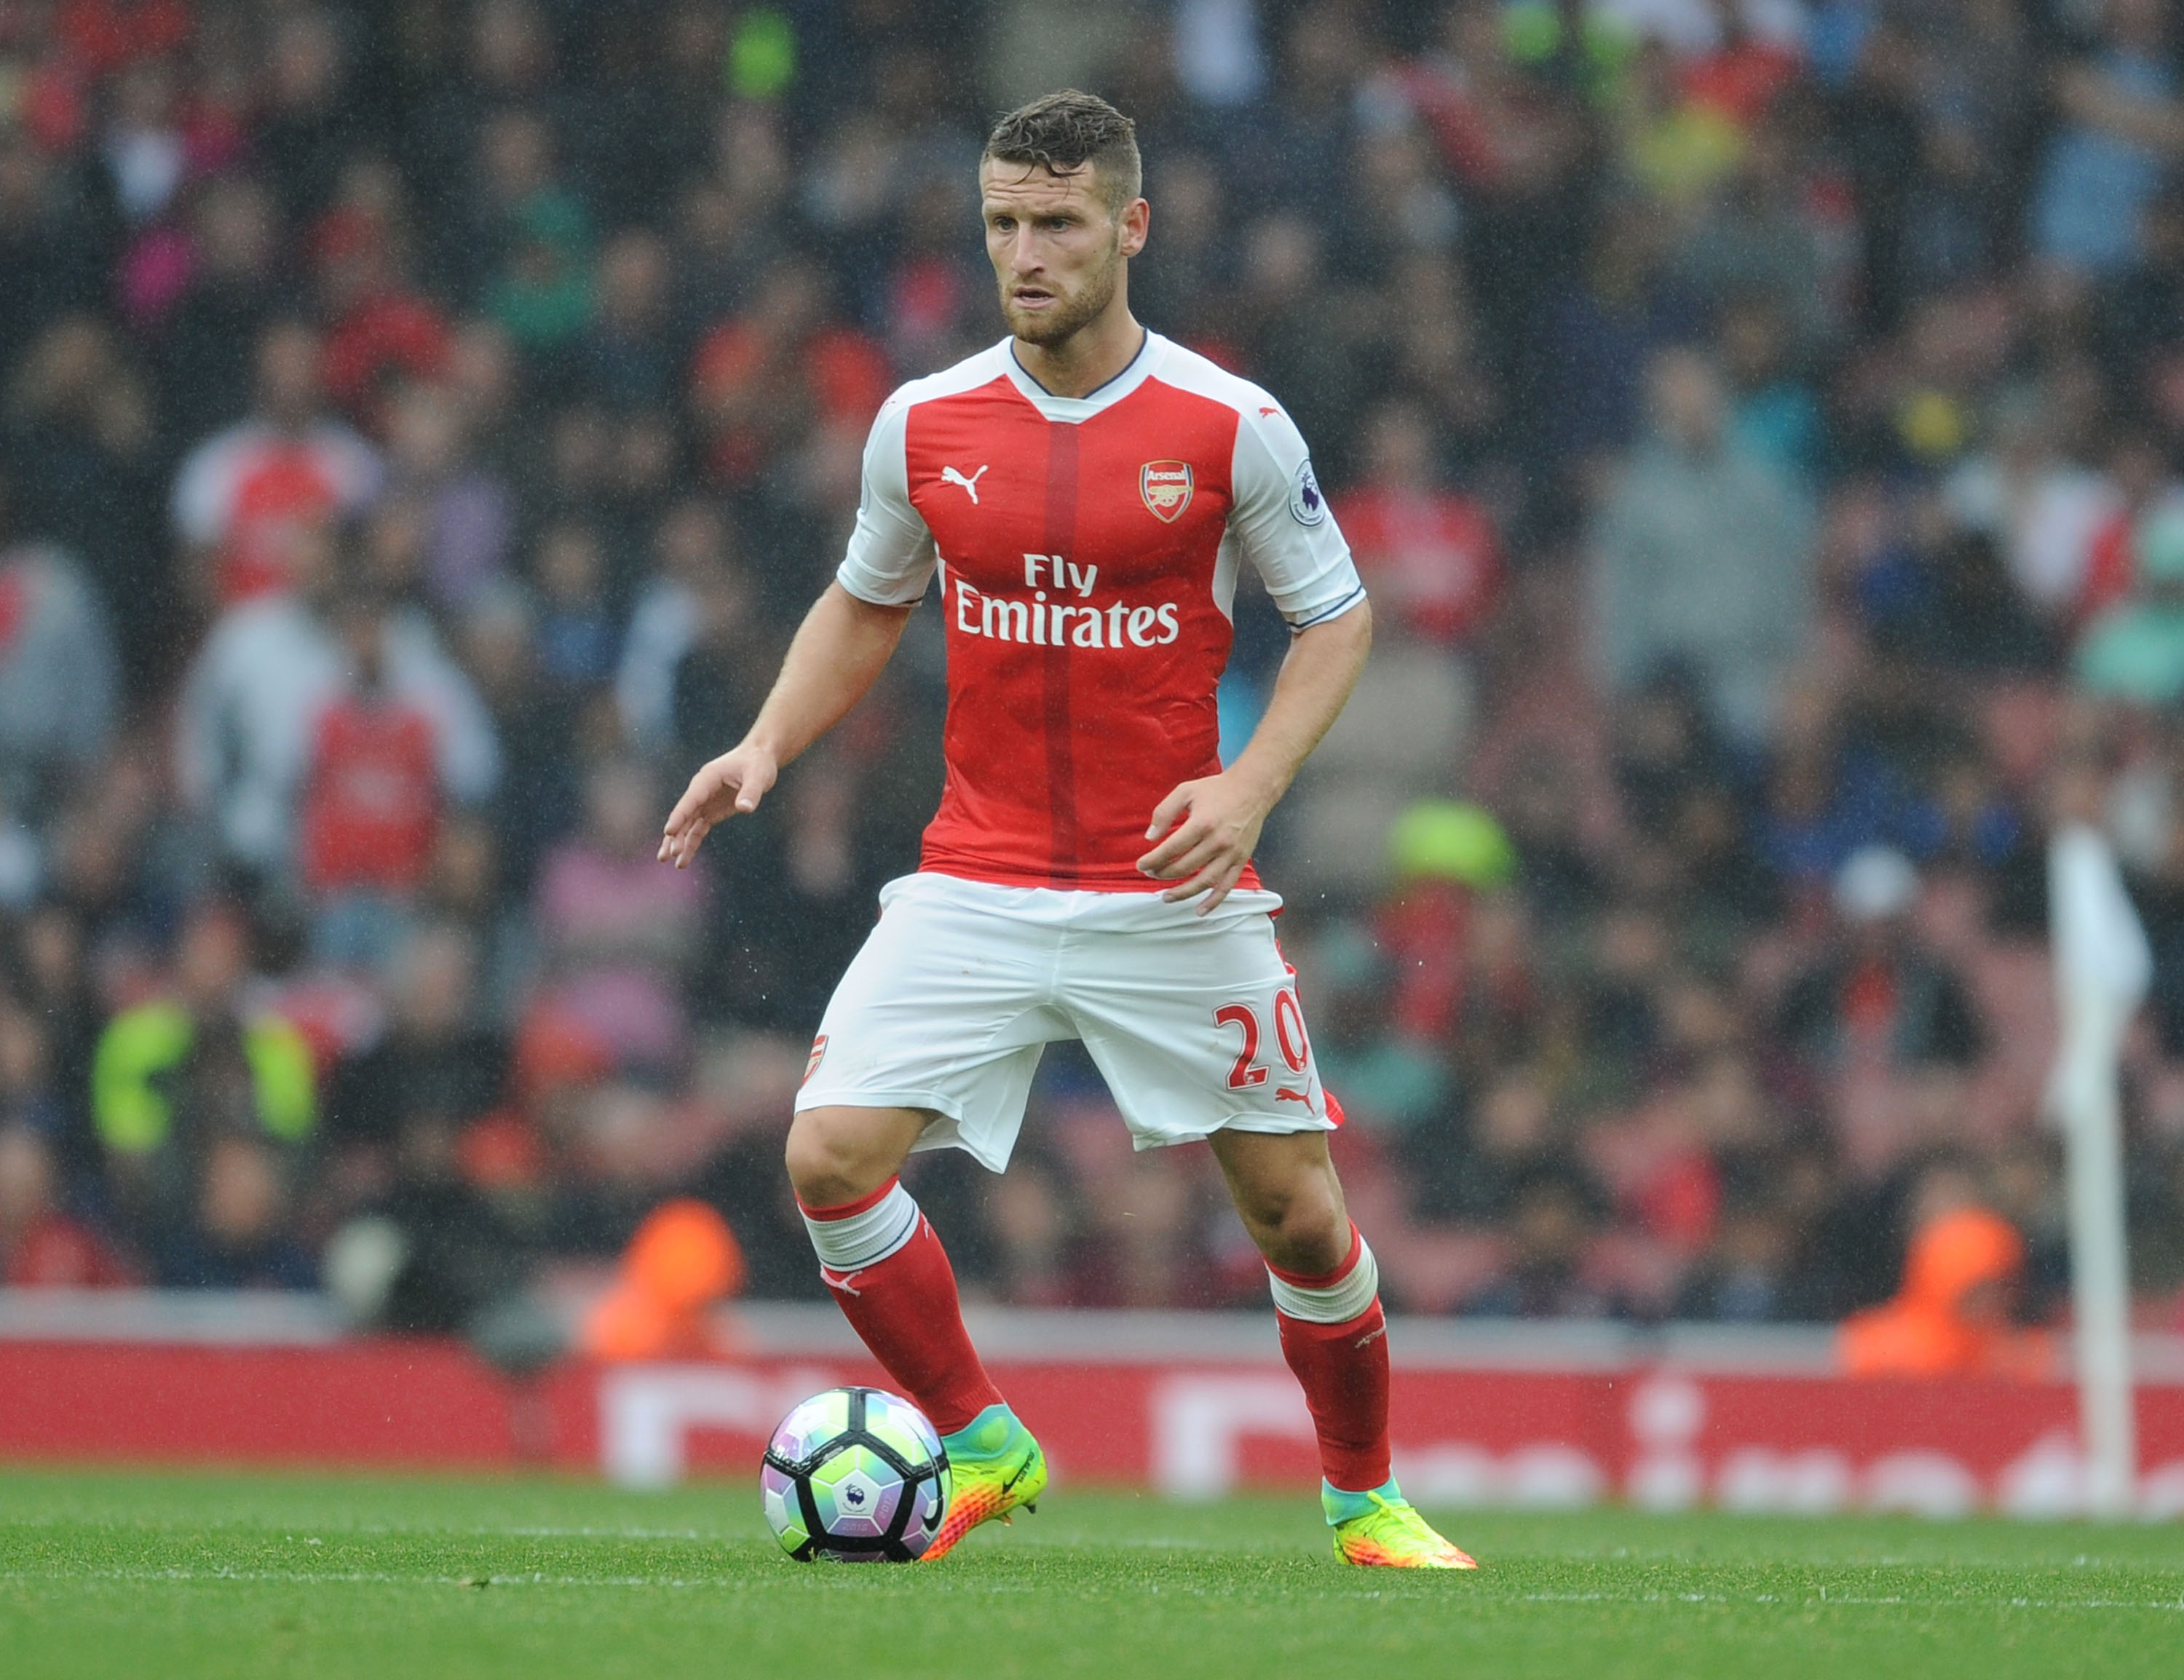 Arsenal 2 - 1 Southampton: Player Ratings